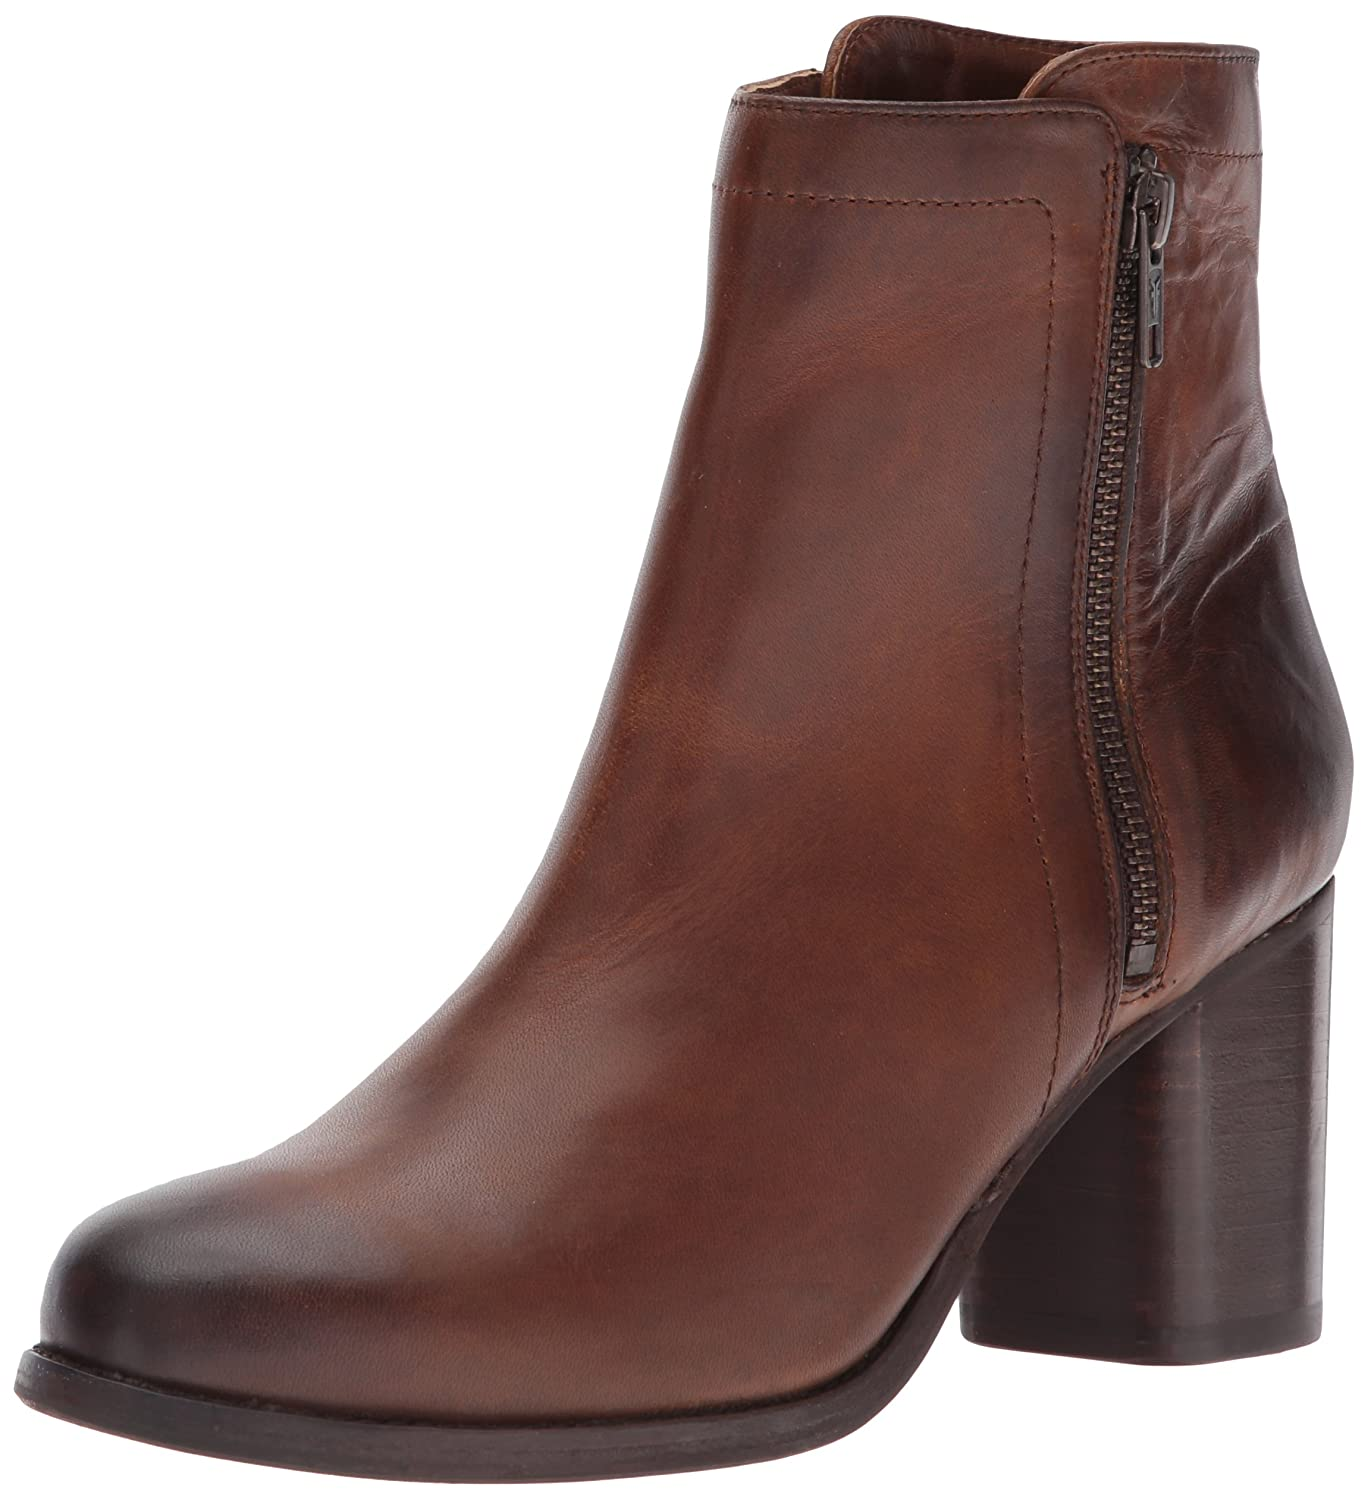 FRYE Women's Addie Double Zip Boot B01N0ZOVYL 8.5 B(M) US|Whiskey Oil Tanned Full Grain